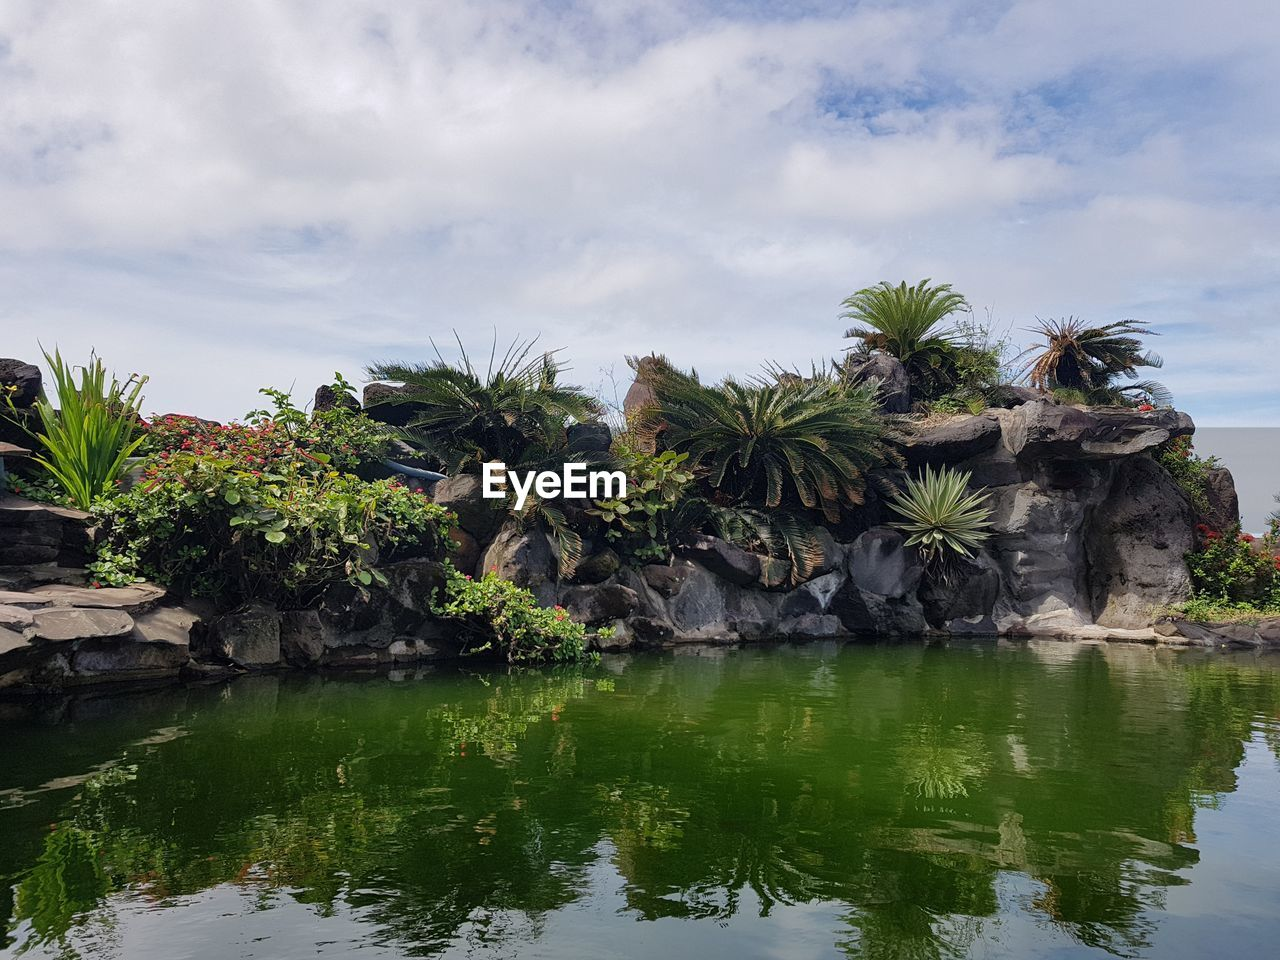 water, palm tree, tree, plant, sky, reflection, cloud - sky, tropical climate, beauty in nature, nature, waterfront, tranquility, scenics - nature, day, tranquil scene, growth, lake, no people, solid, outdoors, coconut palm tree